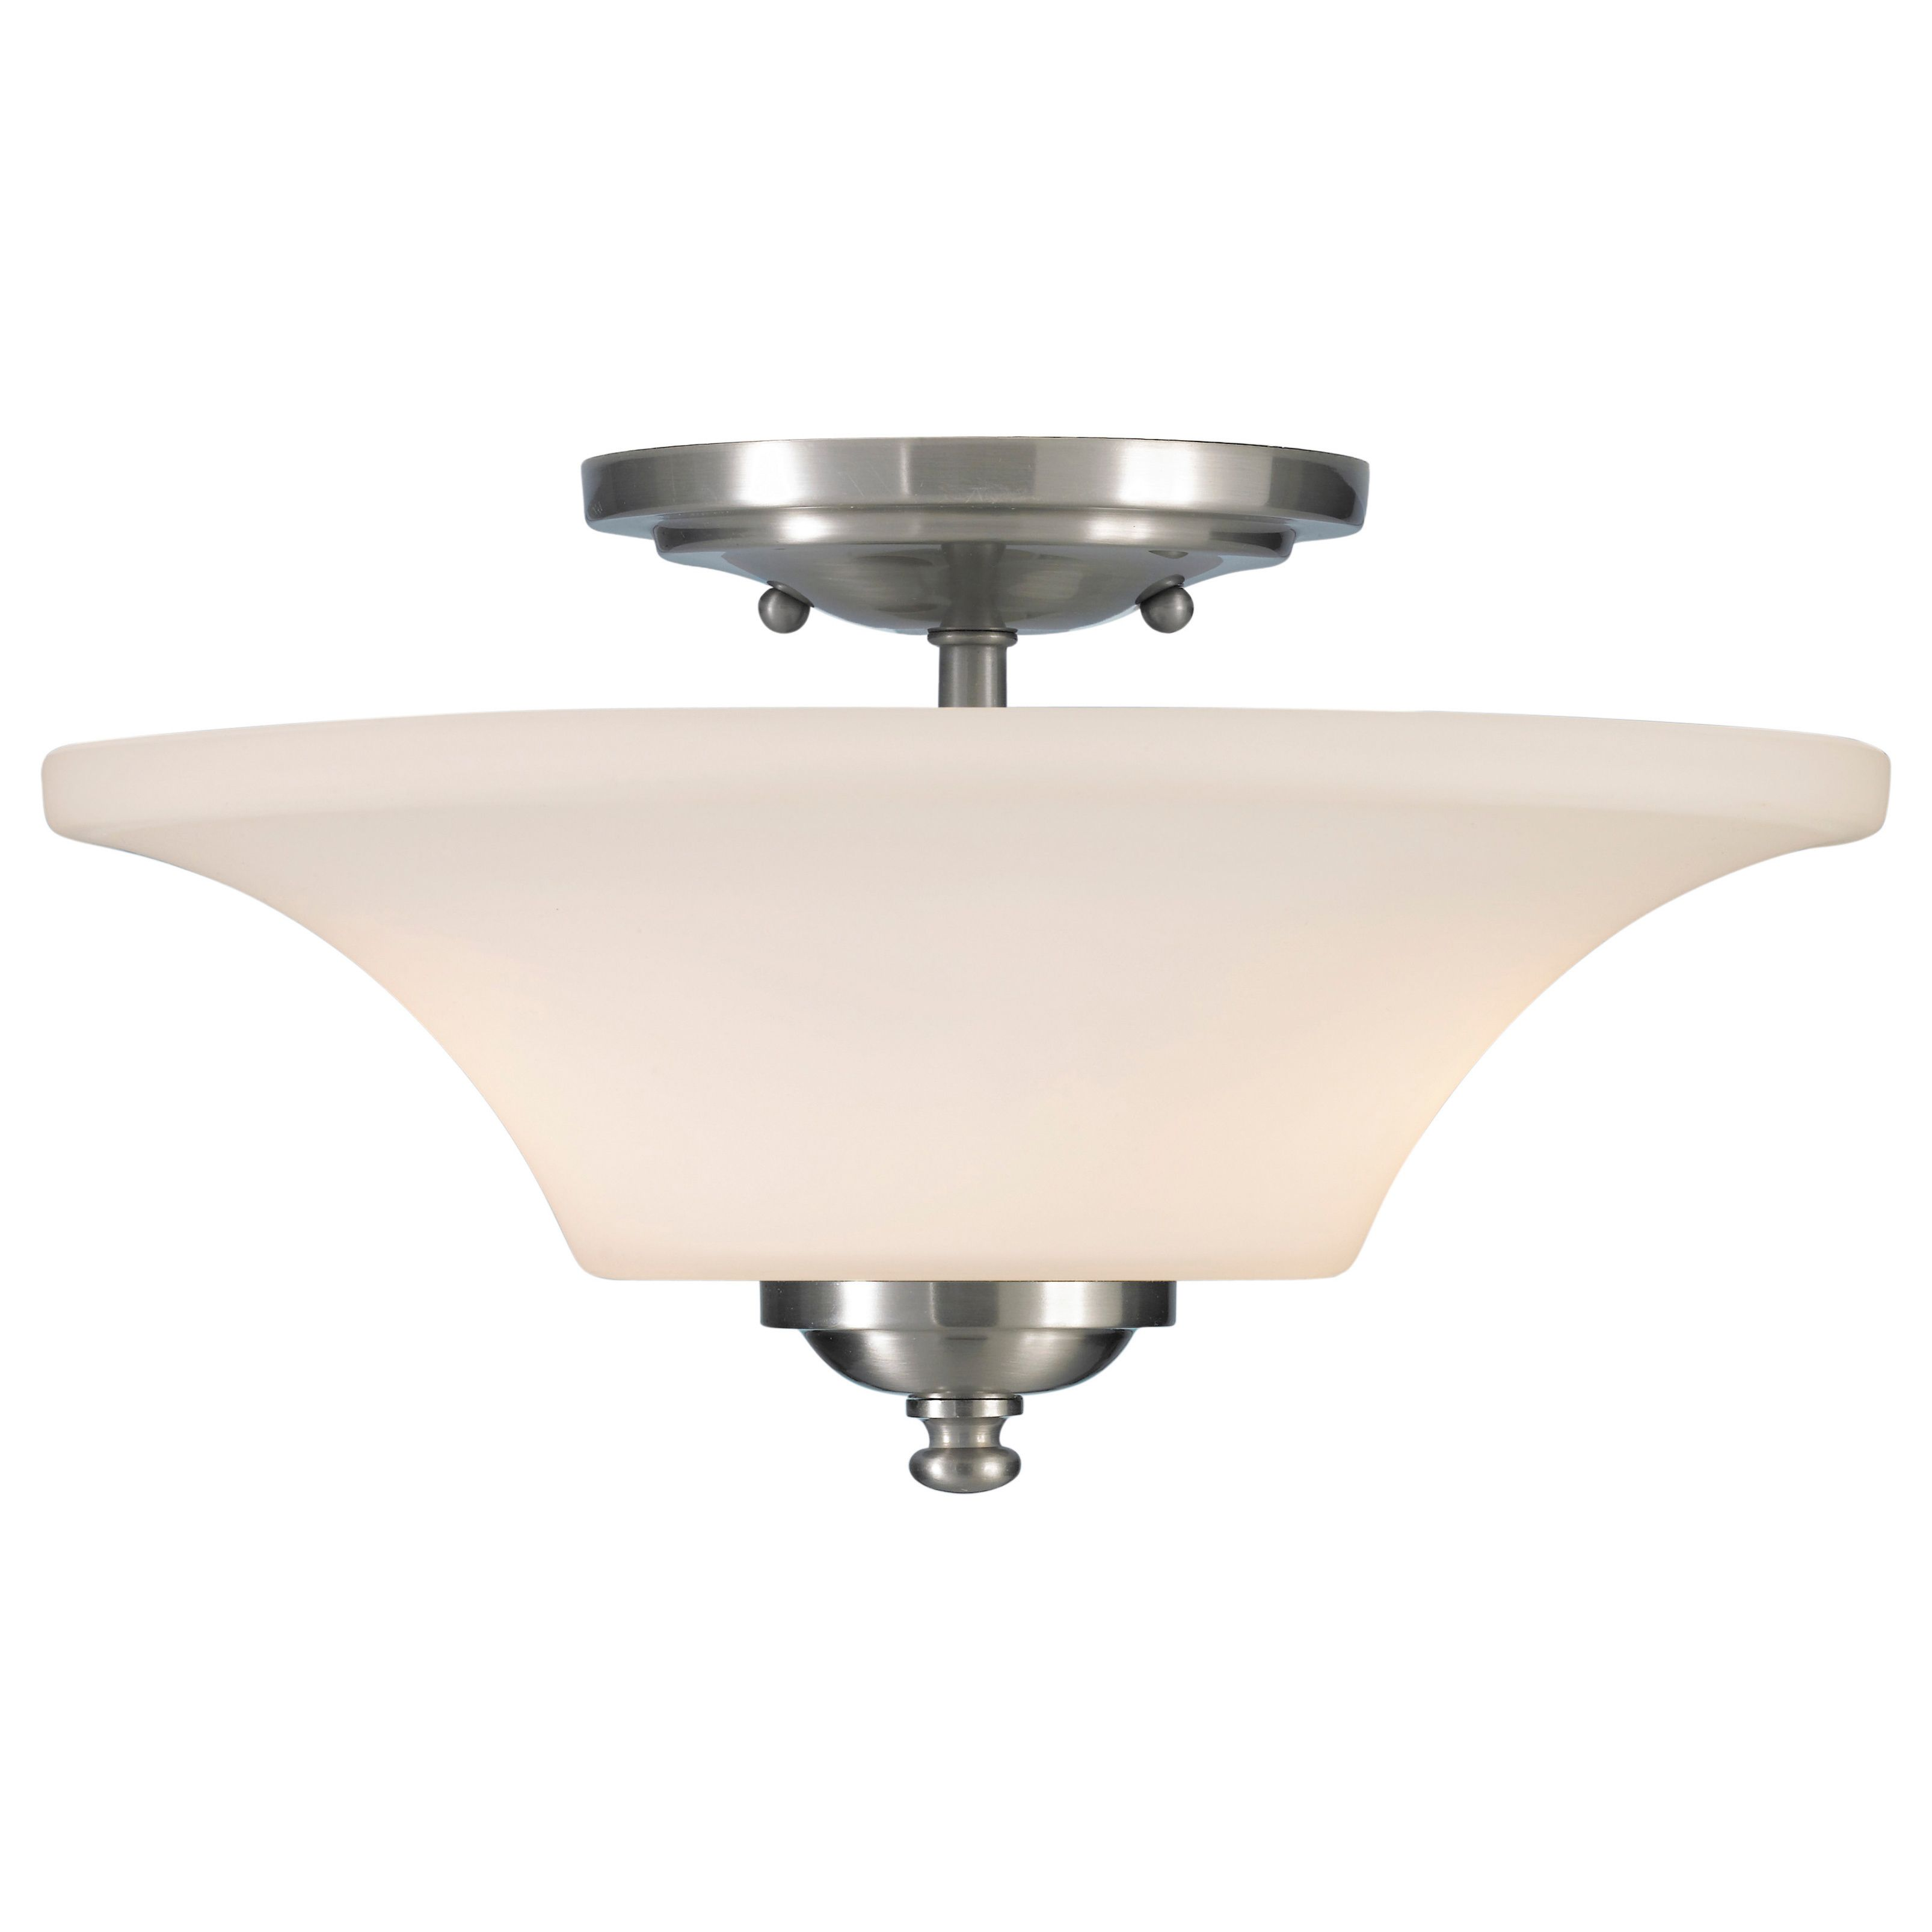 Overstock Com Online Shopping Bedding Furniture Electronics Jewelry Clothing More Semi Flush Mount Lighting Semi Flush Ceiling Lights Flush Mount Lighting